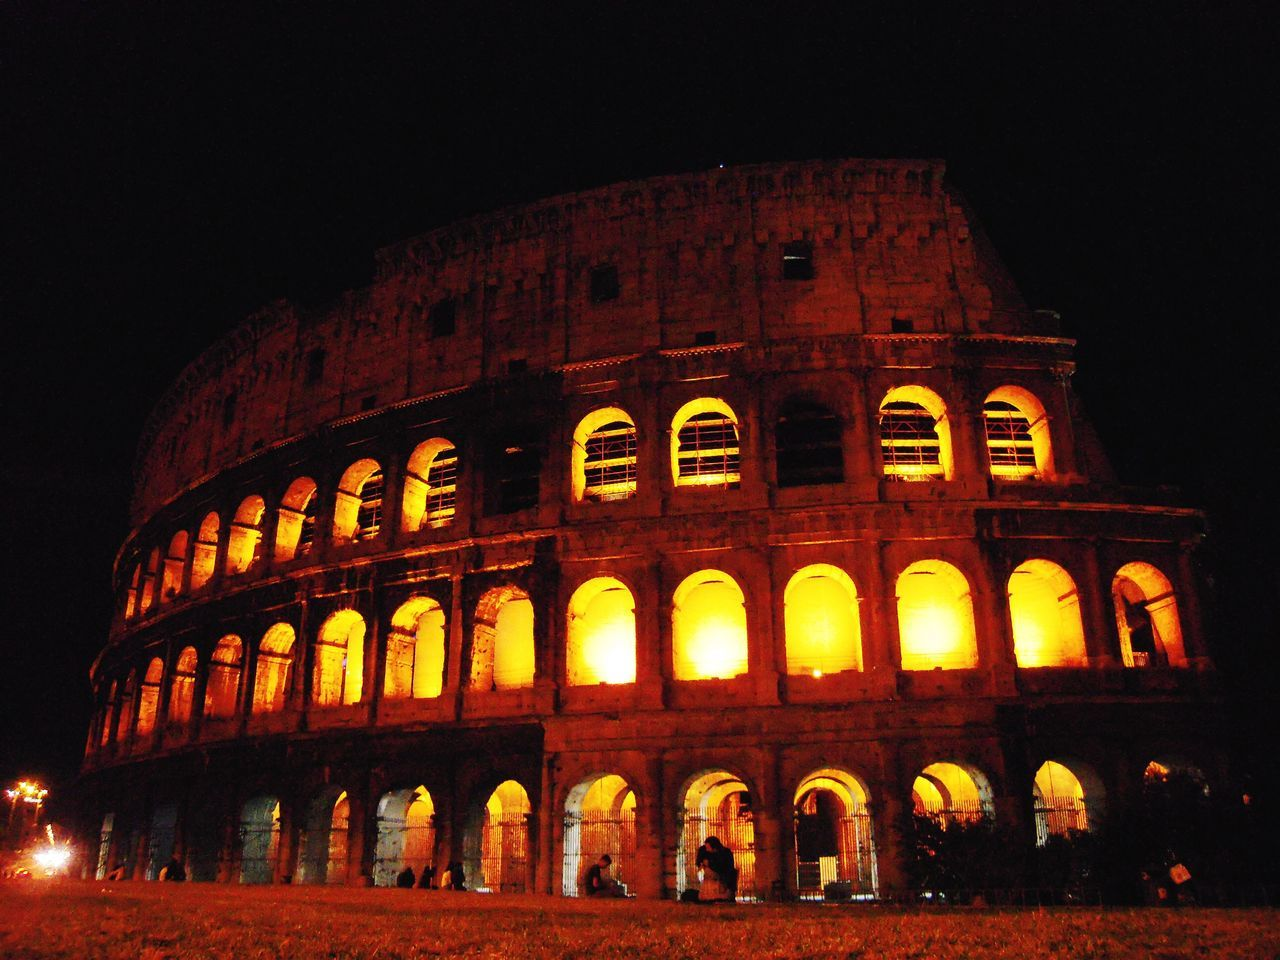 night, history, architecture, ancient, illuminated, the past, built structure, tourism, travel destinations, travel, old ruin, low angle view, arts culture and entertainment, arch, building exterior, ancient civilization, outdoors, no people, sky